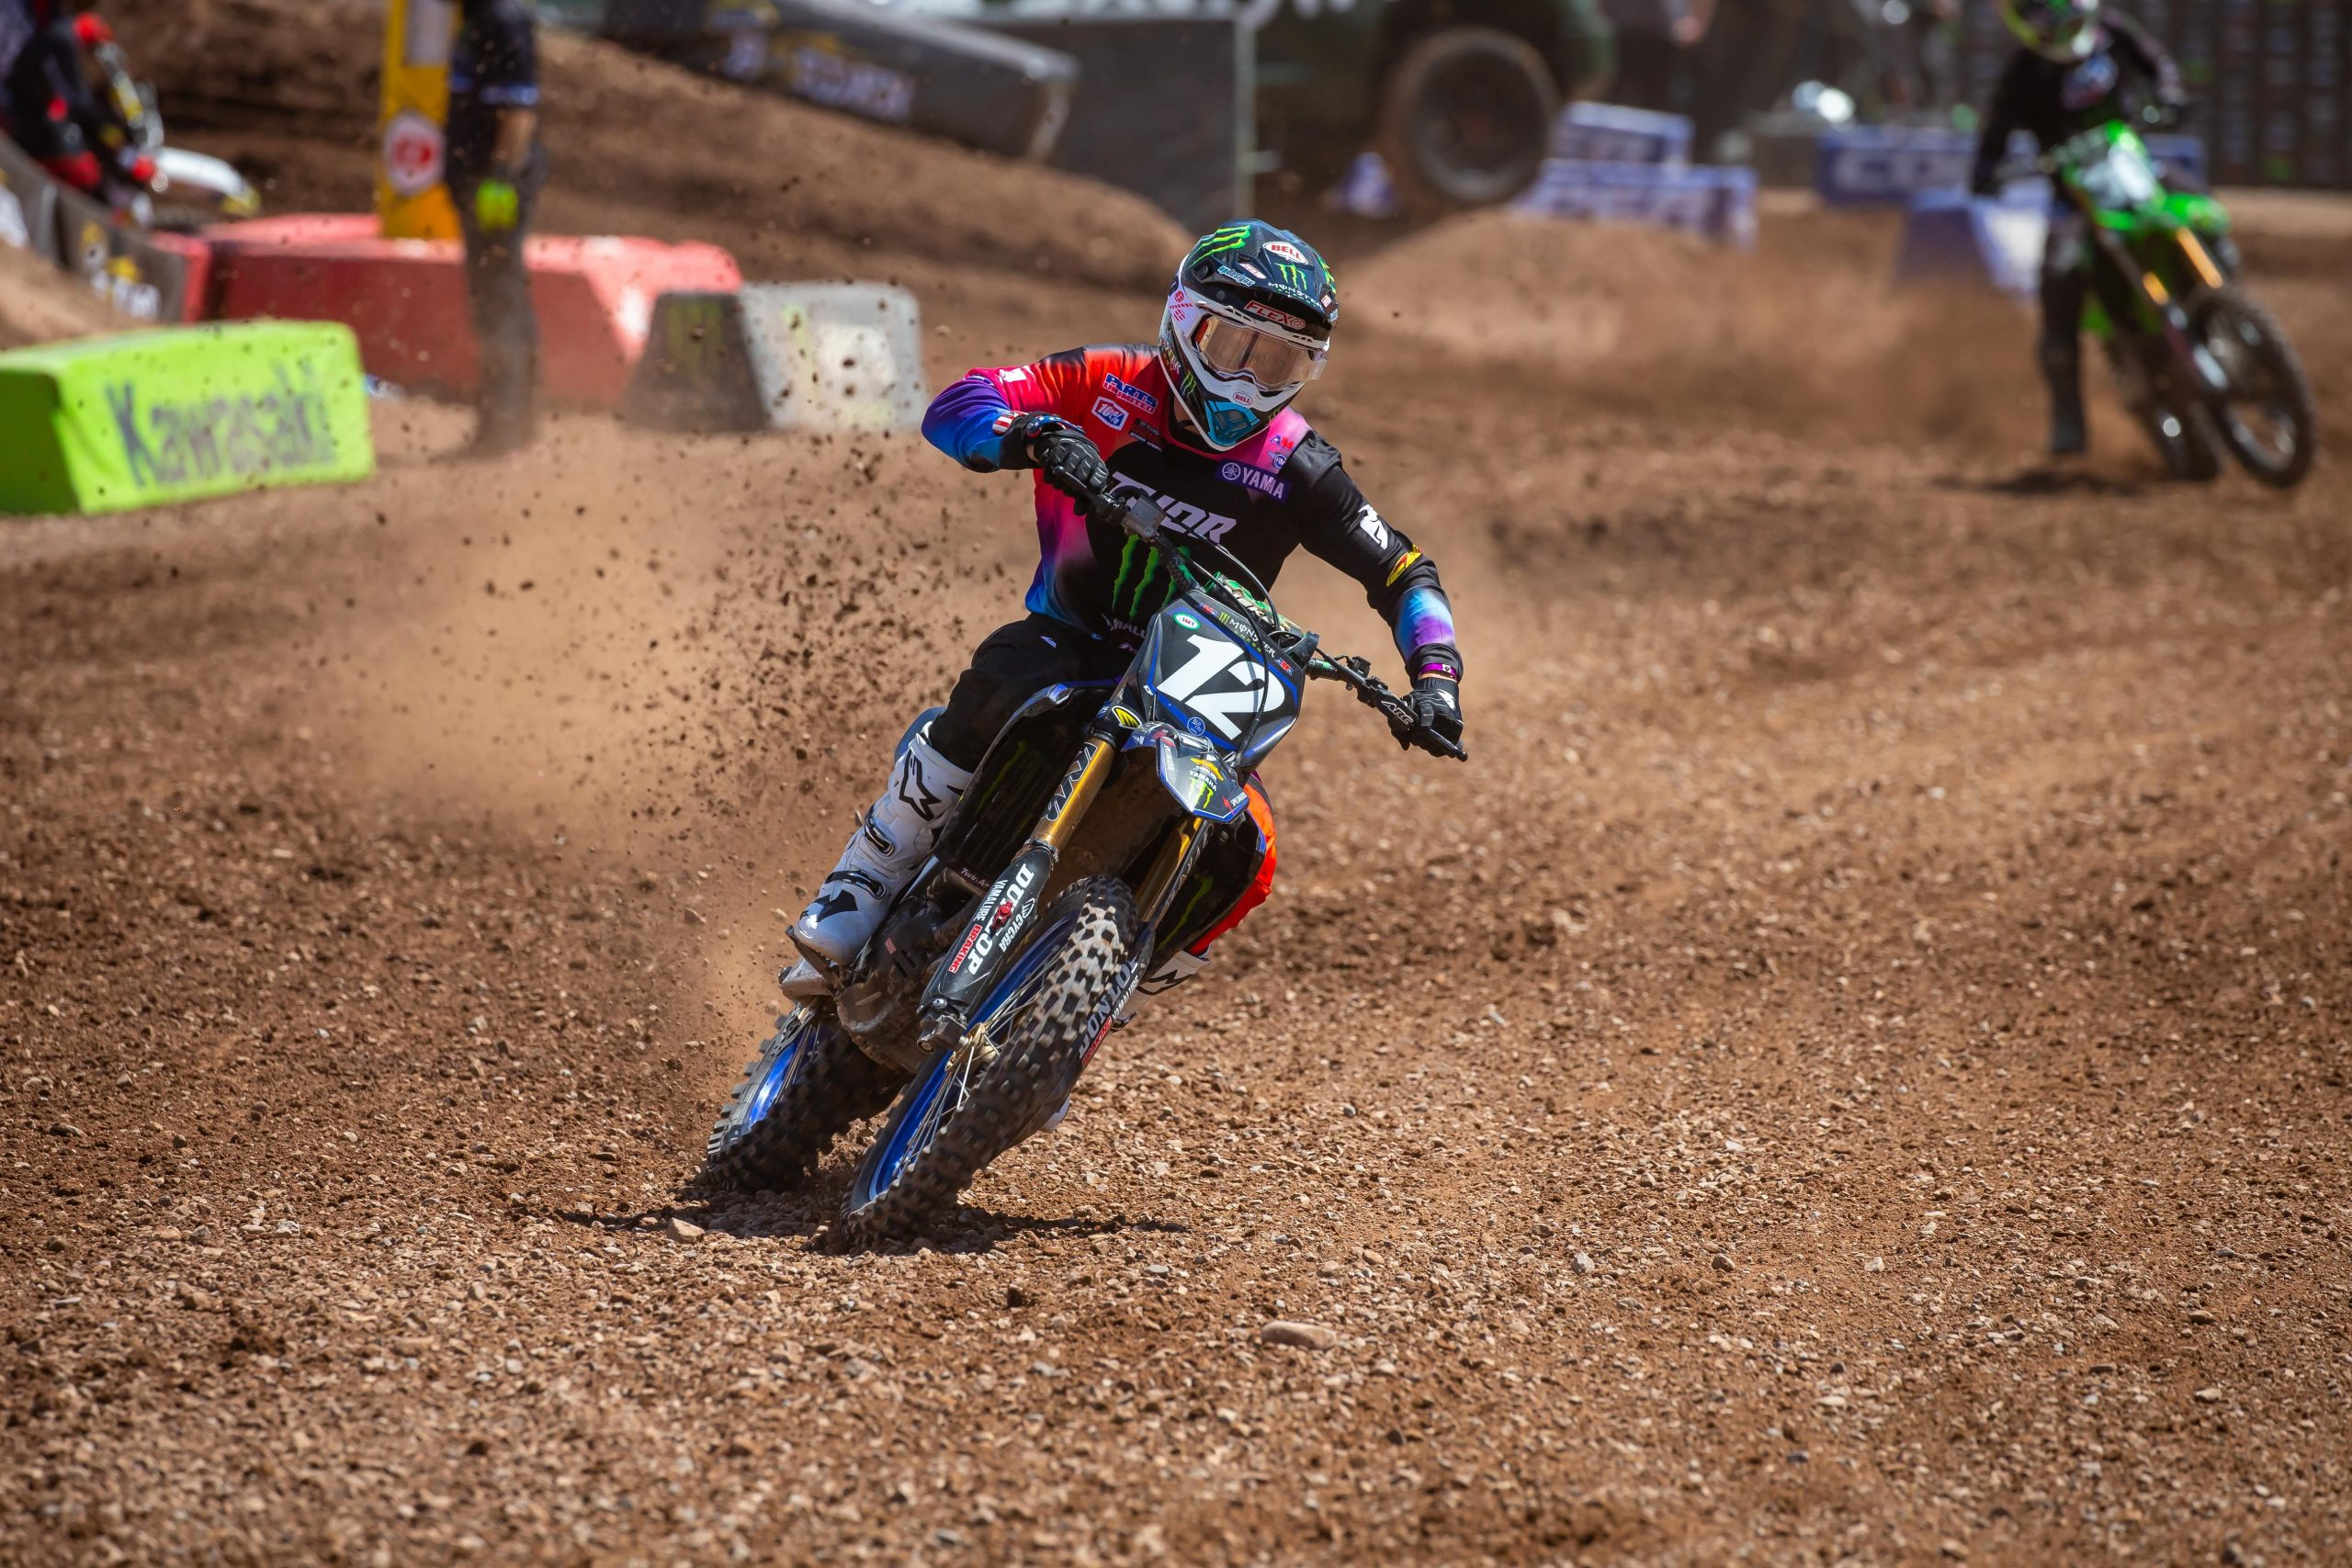 Shane McElrath earned his second 250SX Class win of the year - 250SX Round 11